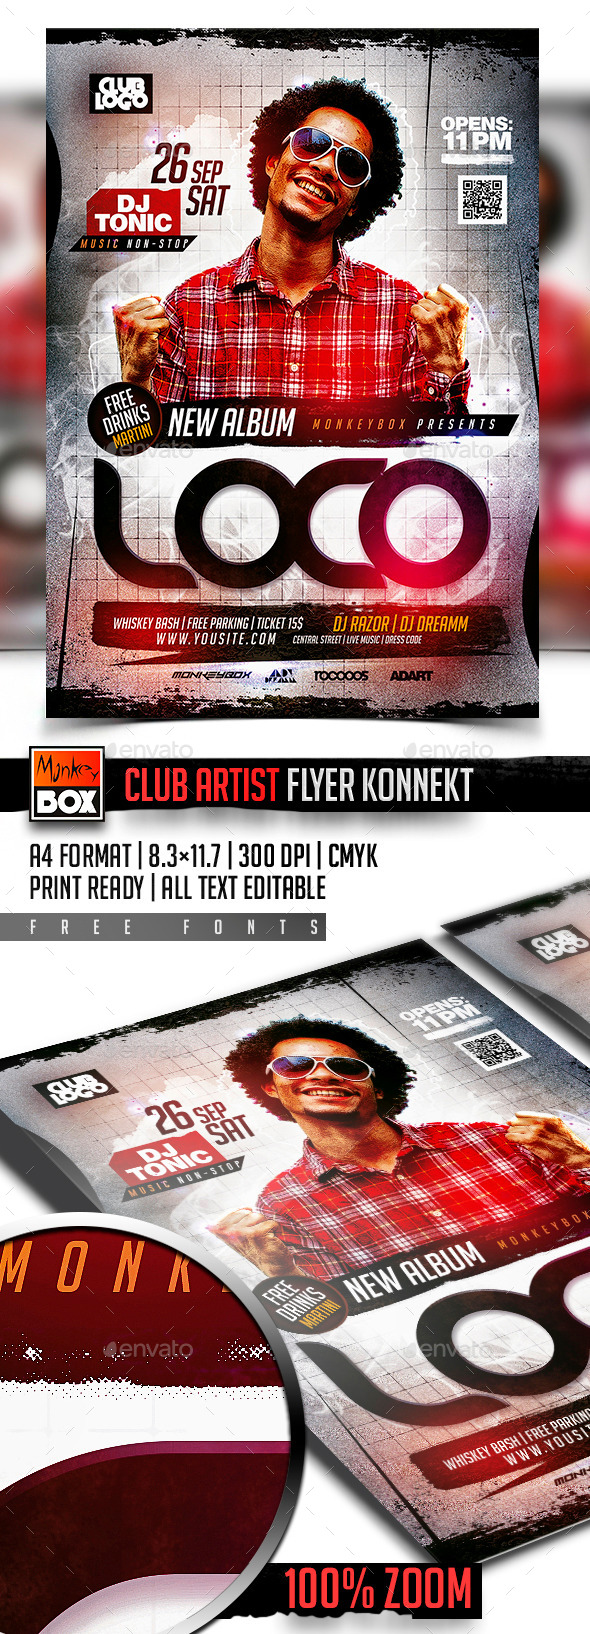 Club Artist Flyer Konnekt - Events Flyers